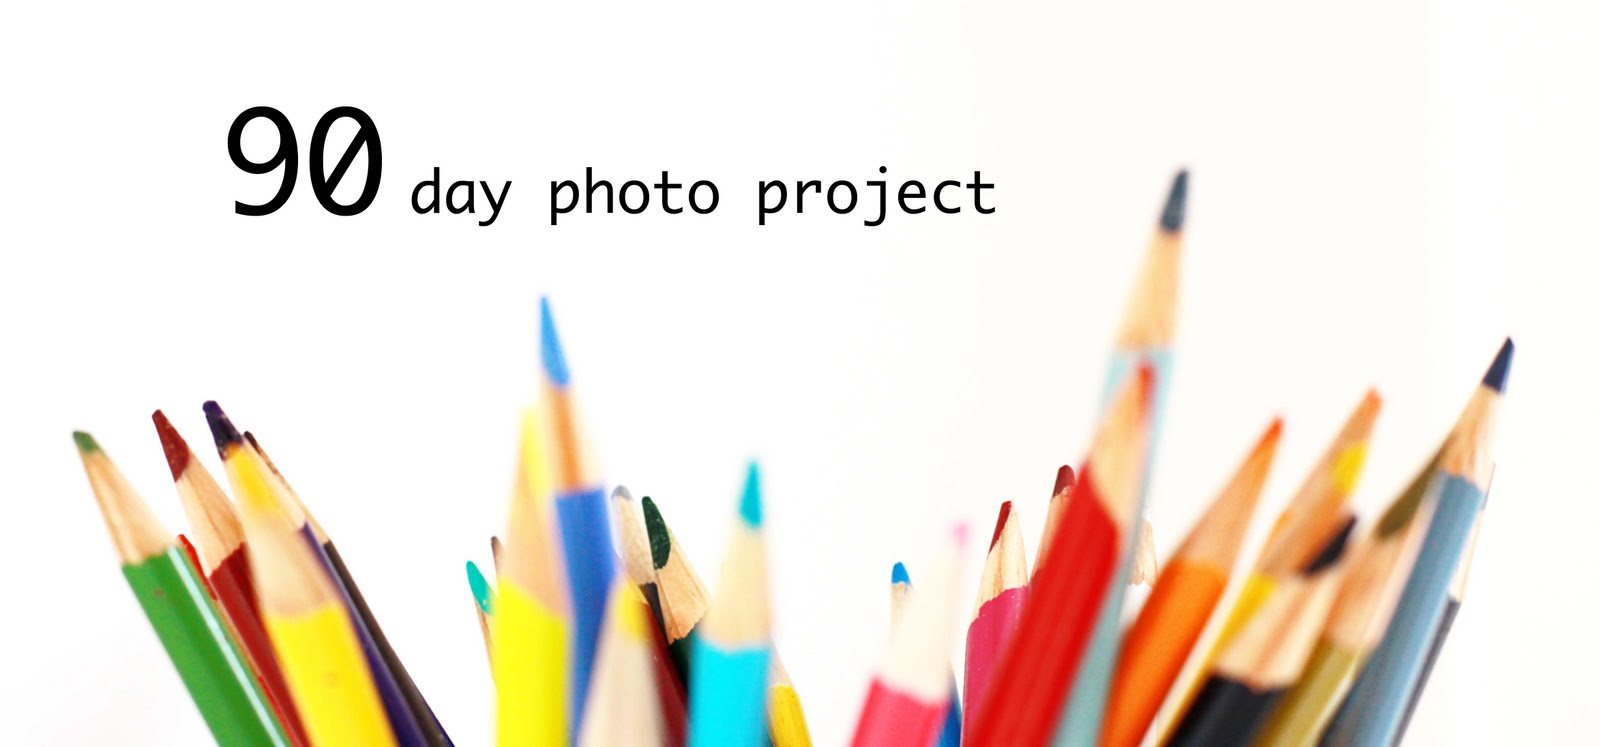 90 day photo project